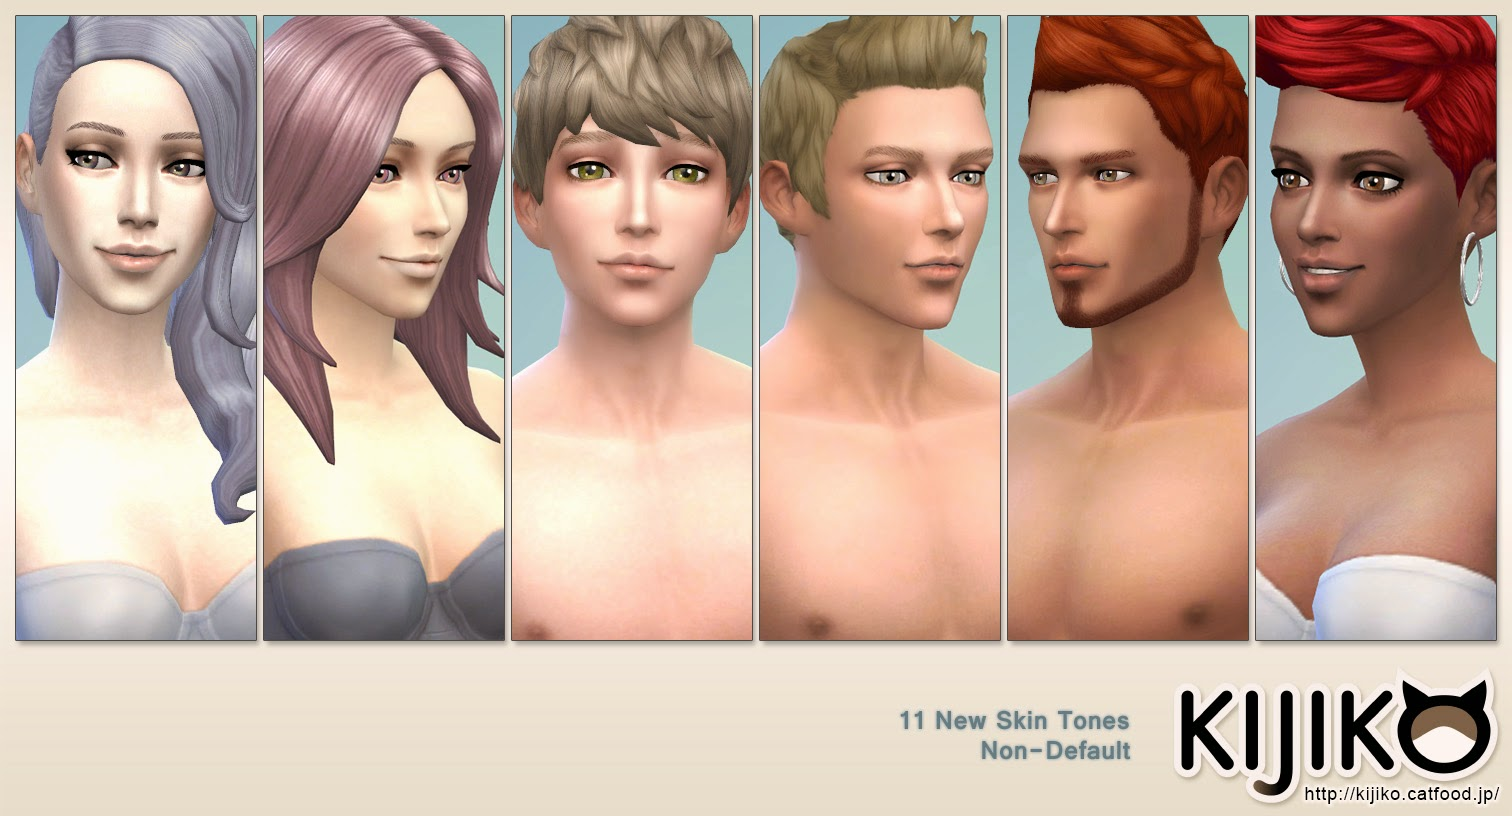 My Sims 4 Blog: Skin Tones Glow Edition and Skin Texture